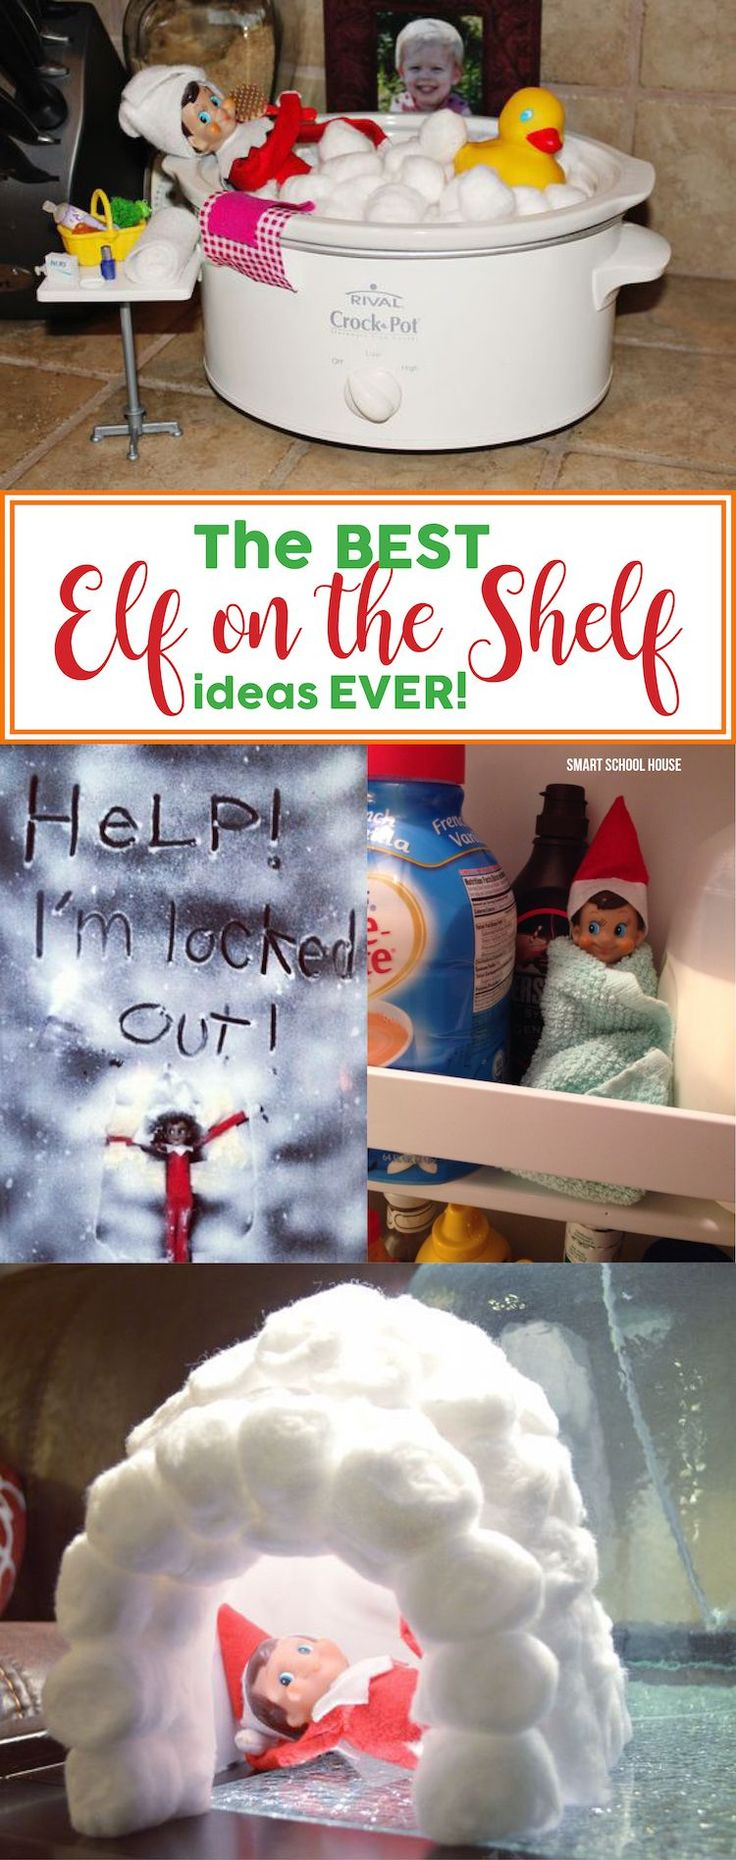 The Best Elf on the Shelf Ideas Ever!! Don't worry about frantically figuring out what to do with the elf tonight. Check out these easy ideas instead.